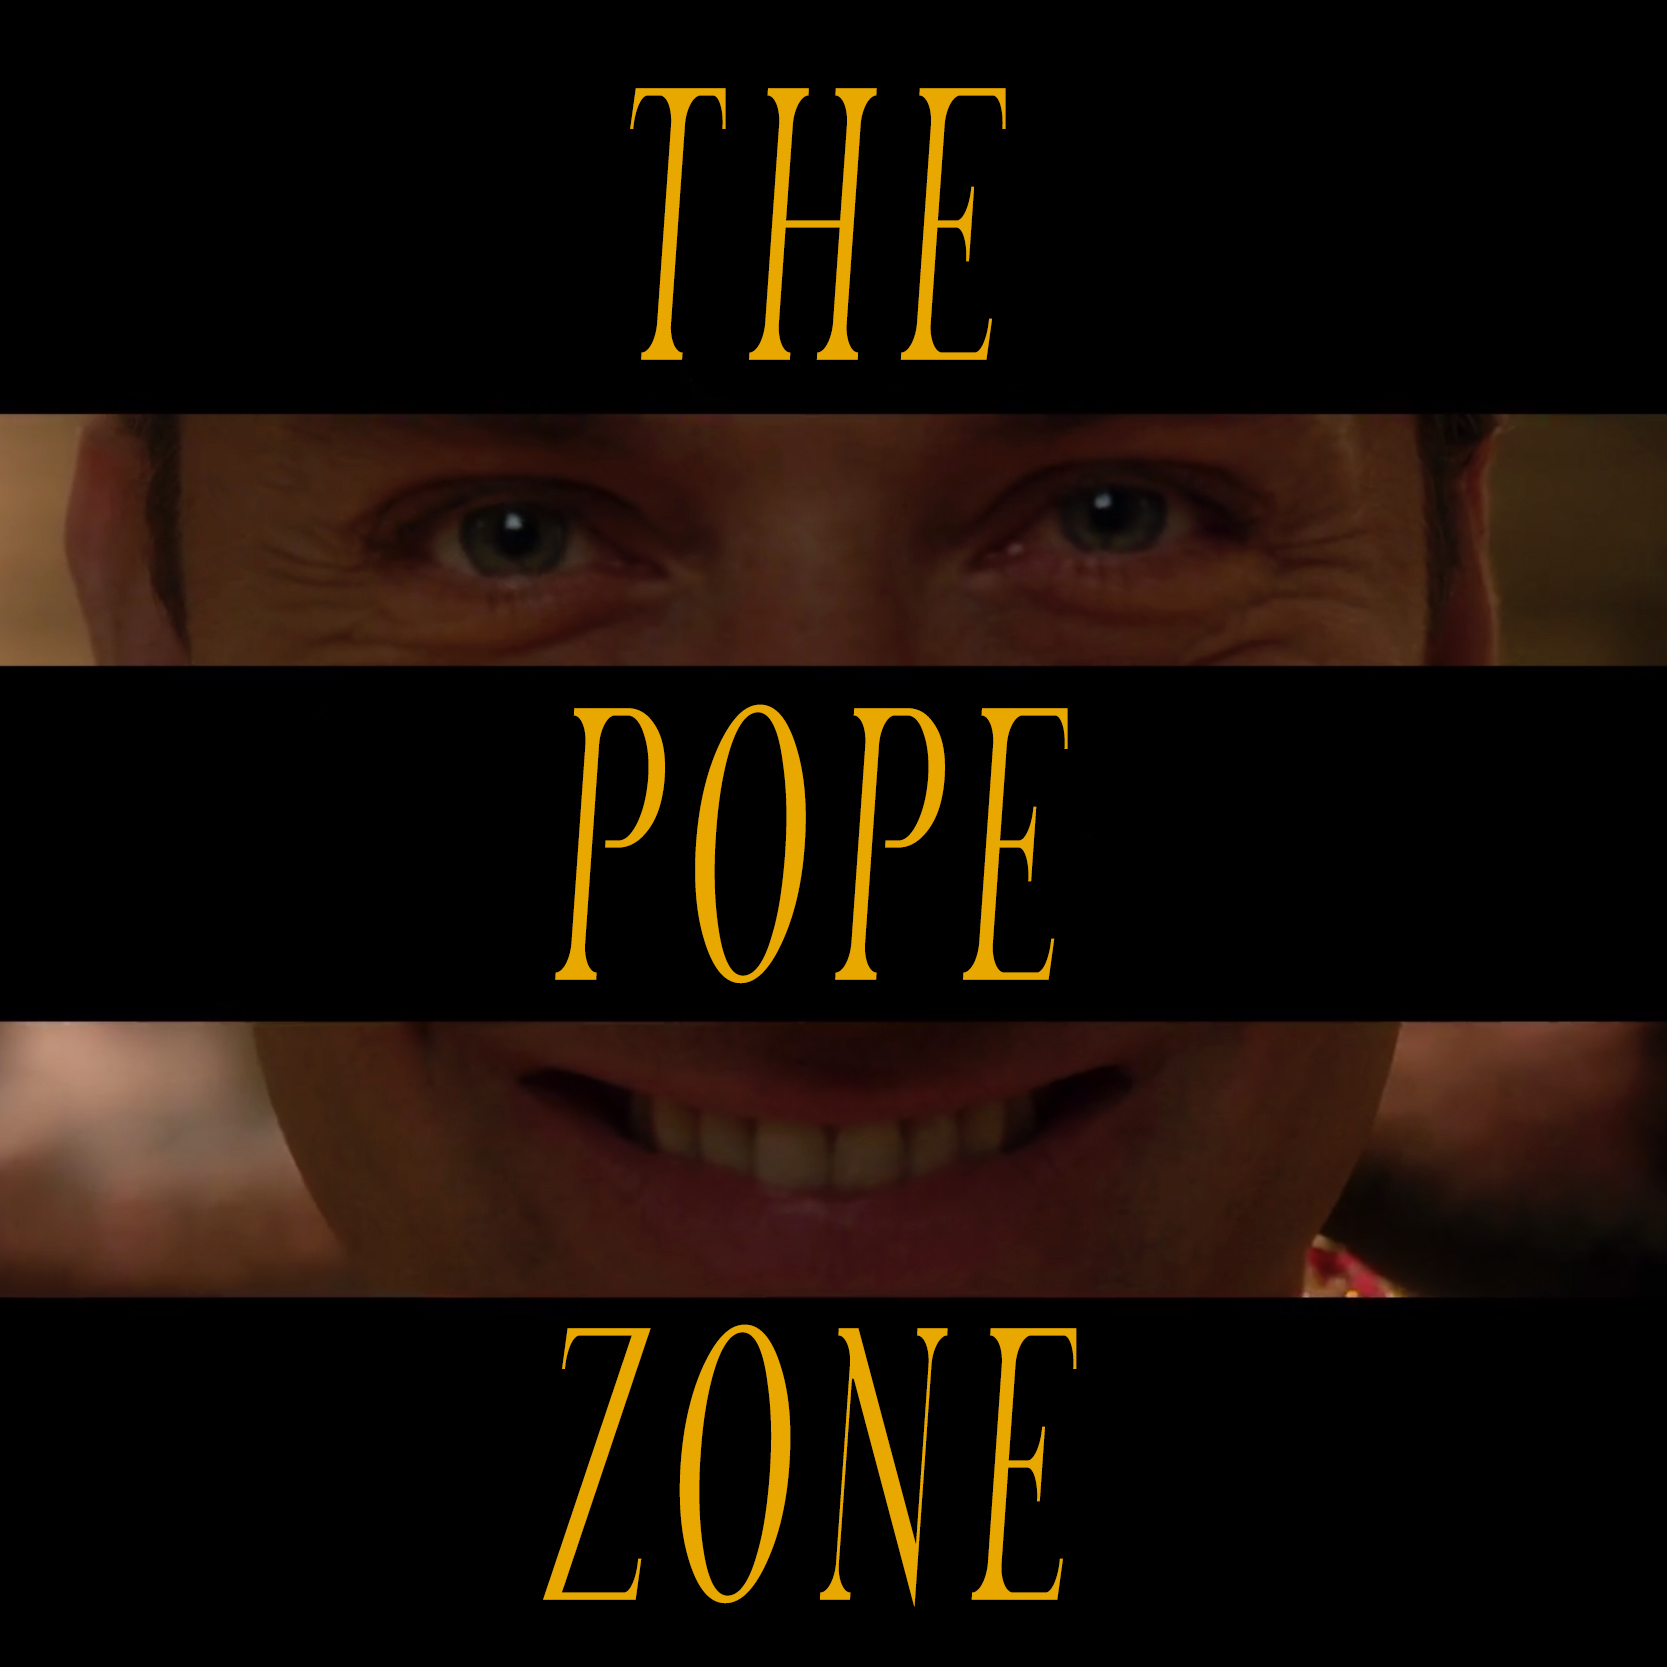 pope zone cover